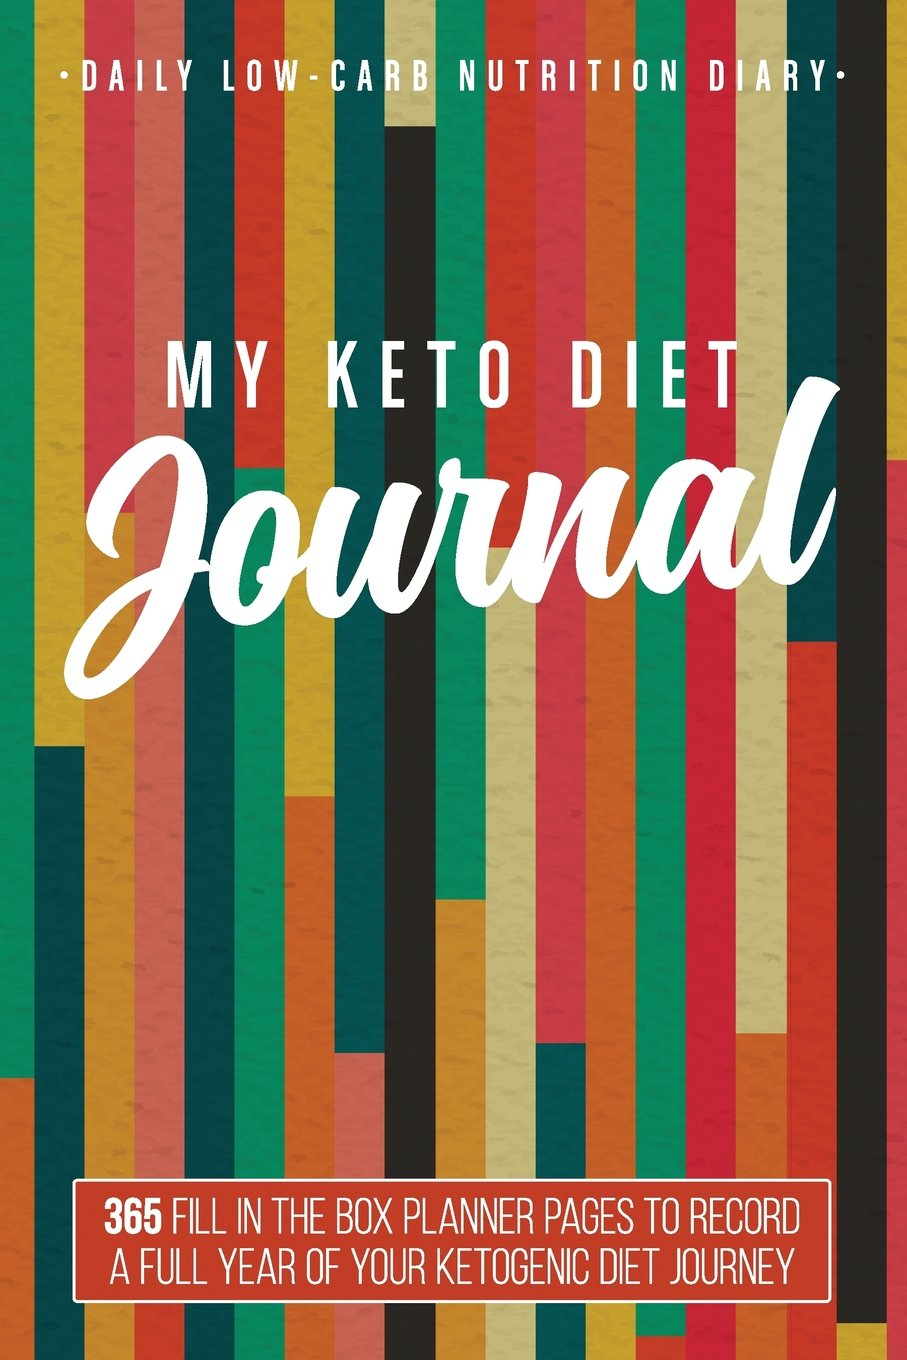 """Download My Keto Diet Journal: Daily Low-Carb Nutrition Diary 6"""" x 9"""" (Multi Stripes): 365 Fill In The Box Planner Pages To Record A Full Year Of Your Ketogenic Diet Journey (Ketonius Books) pdf"""